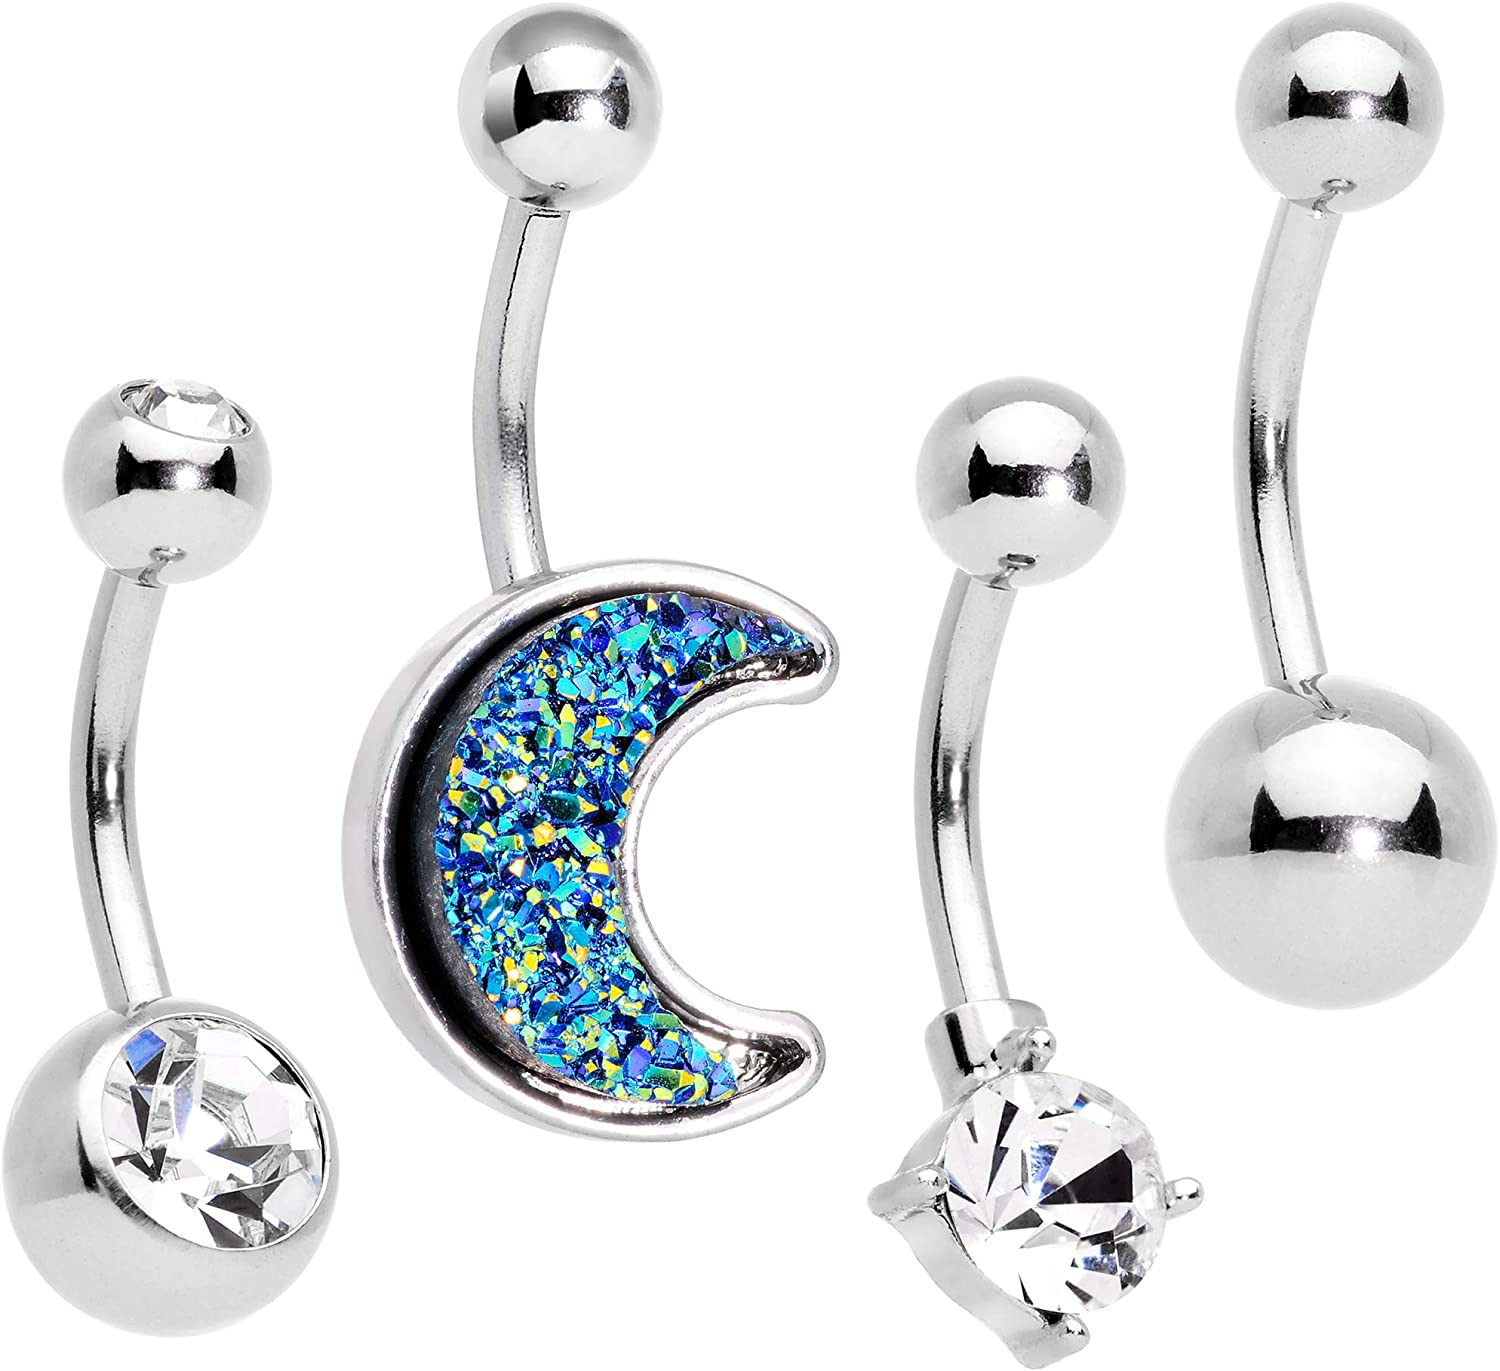 Body Candy 4PC 316L Steel Faceted Blue Moon Bonus Pack Belly Button Rings Navel Piercing Set of 4